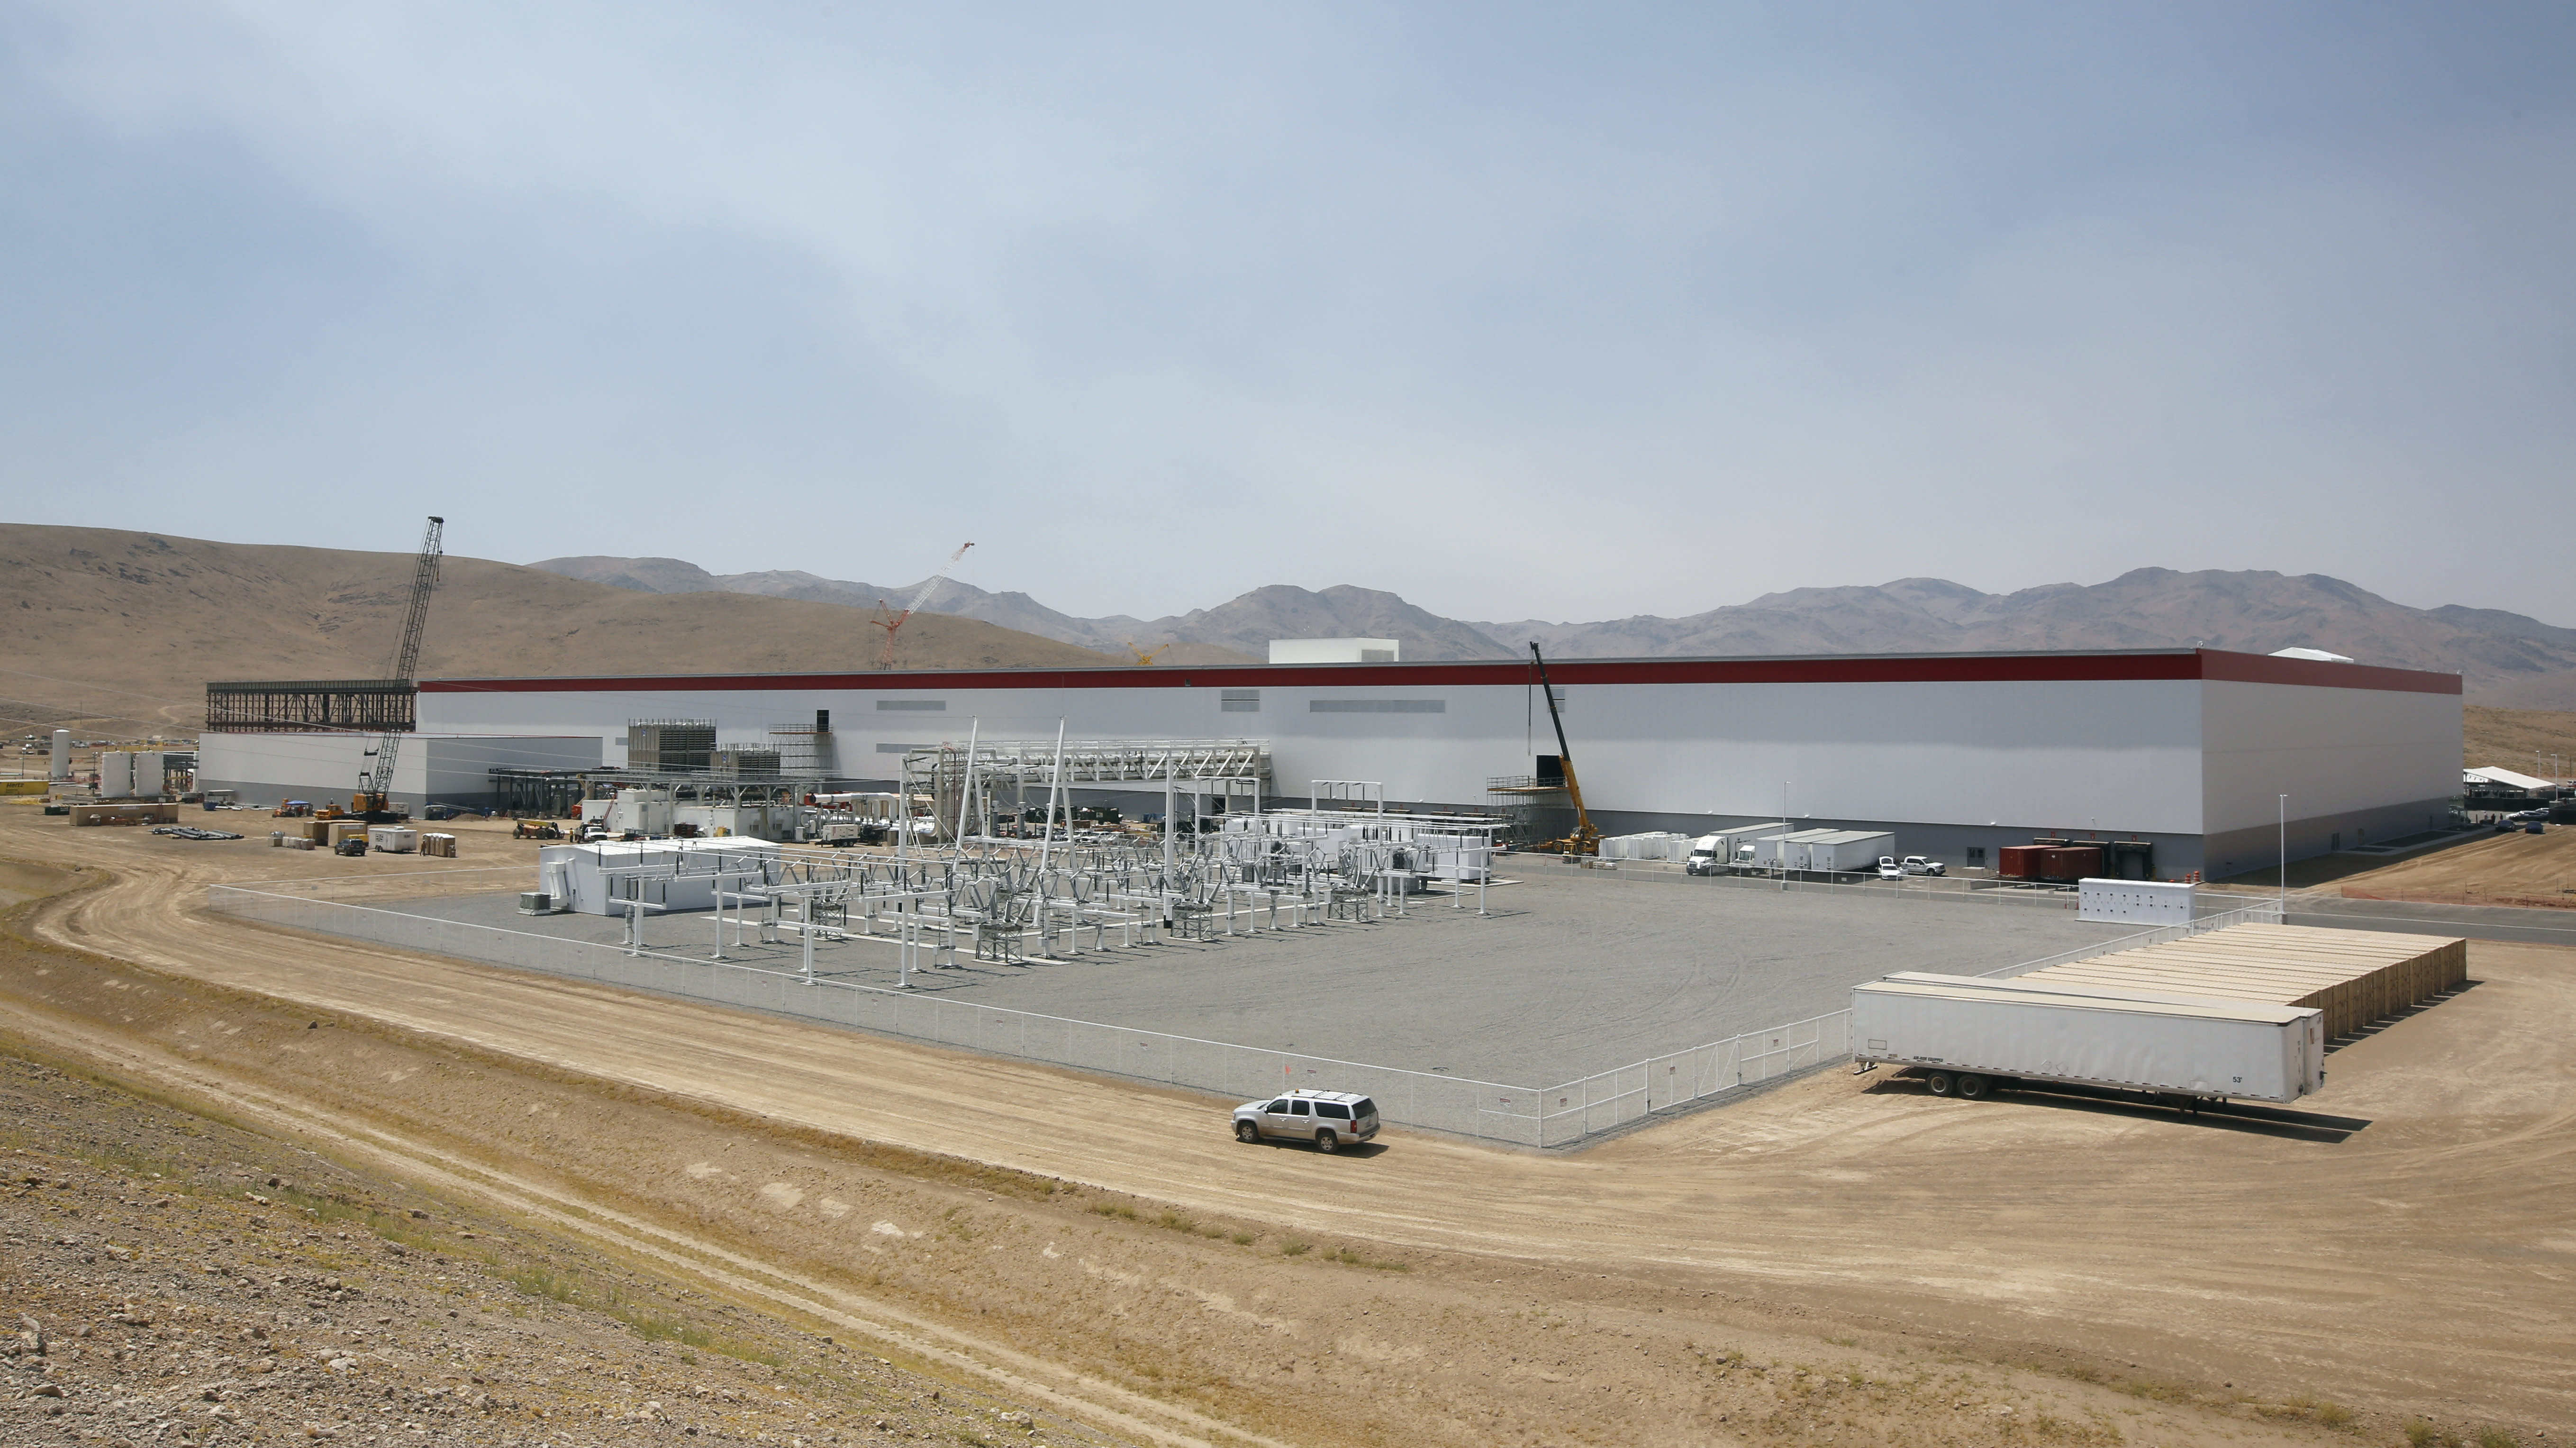 Tesla opens Gigafactory to expand battery production, sales